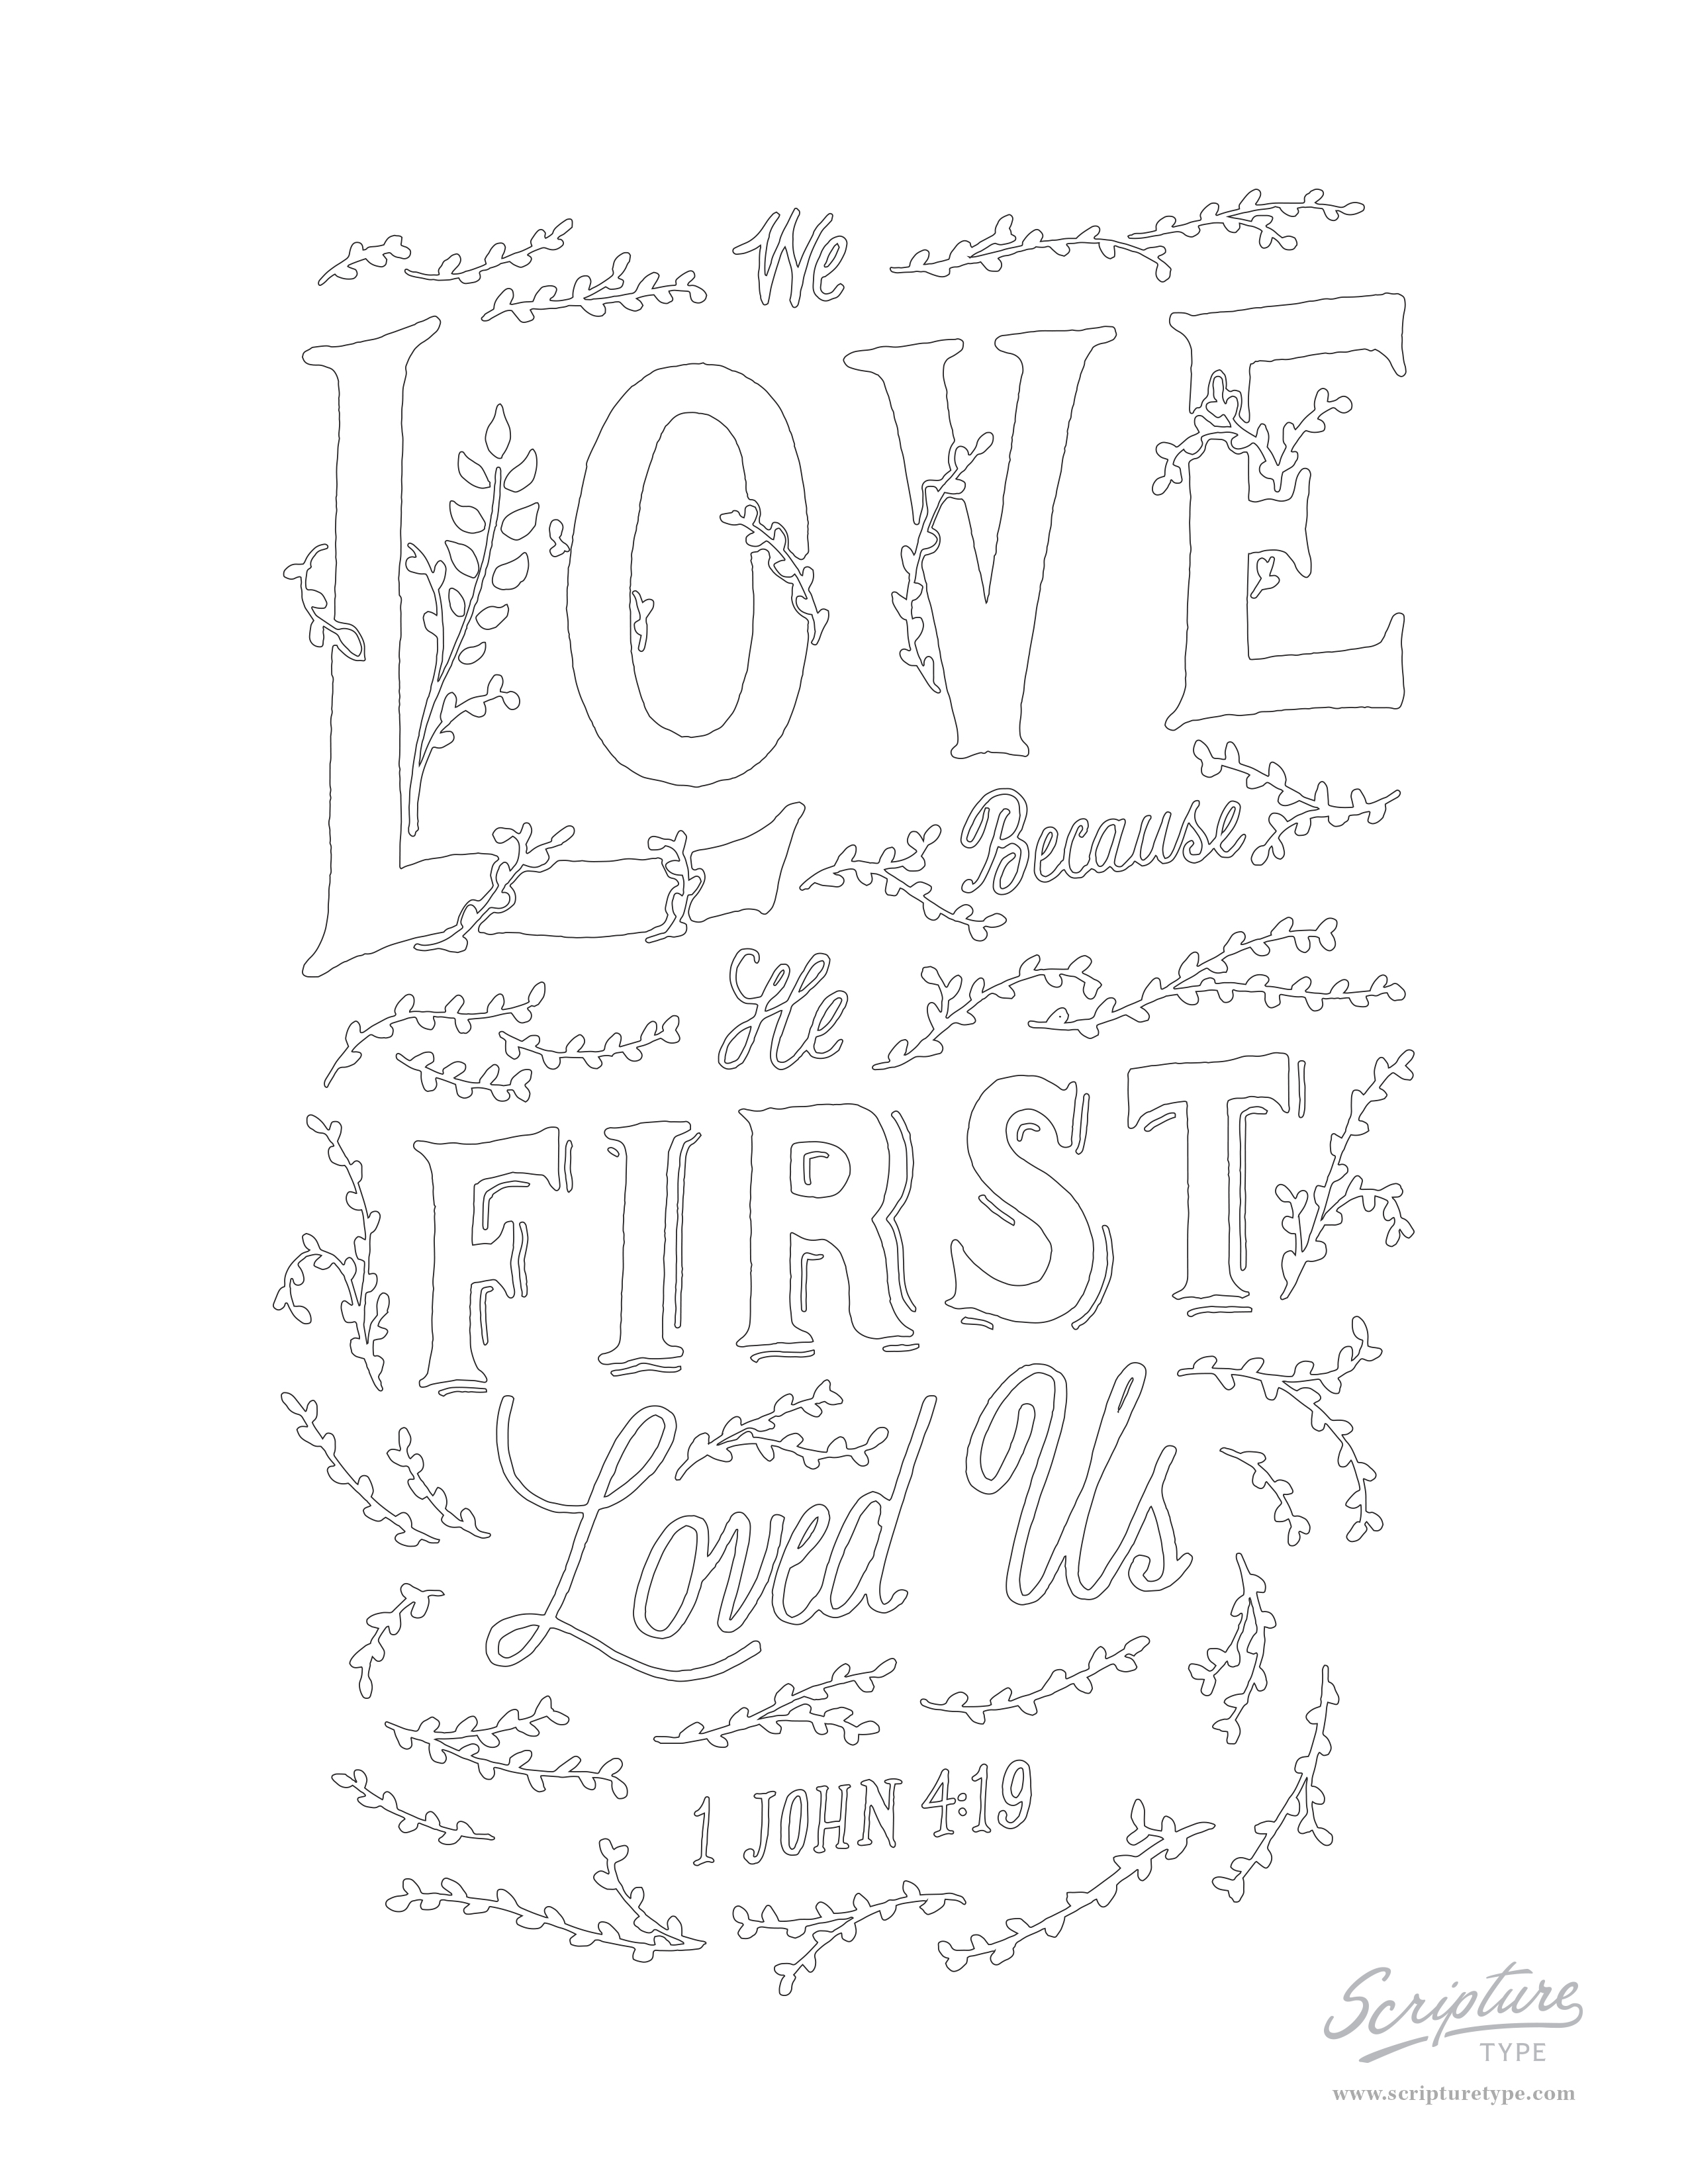 1 john 4 19 coloring page coloring pages for kids by mr adron cross coloring 4 john 1 page coloring 19